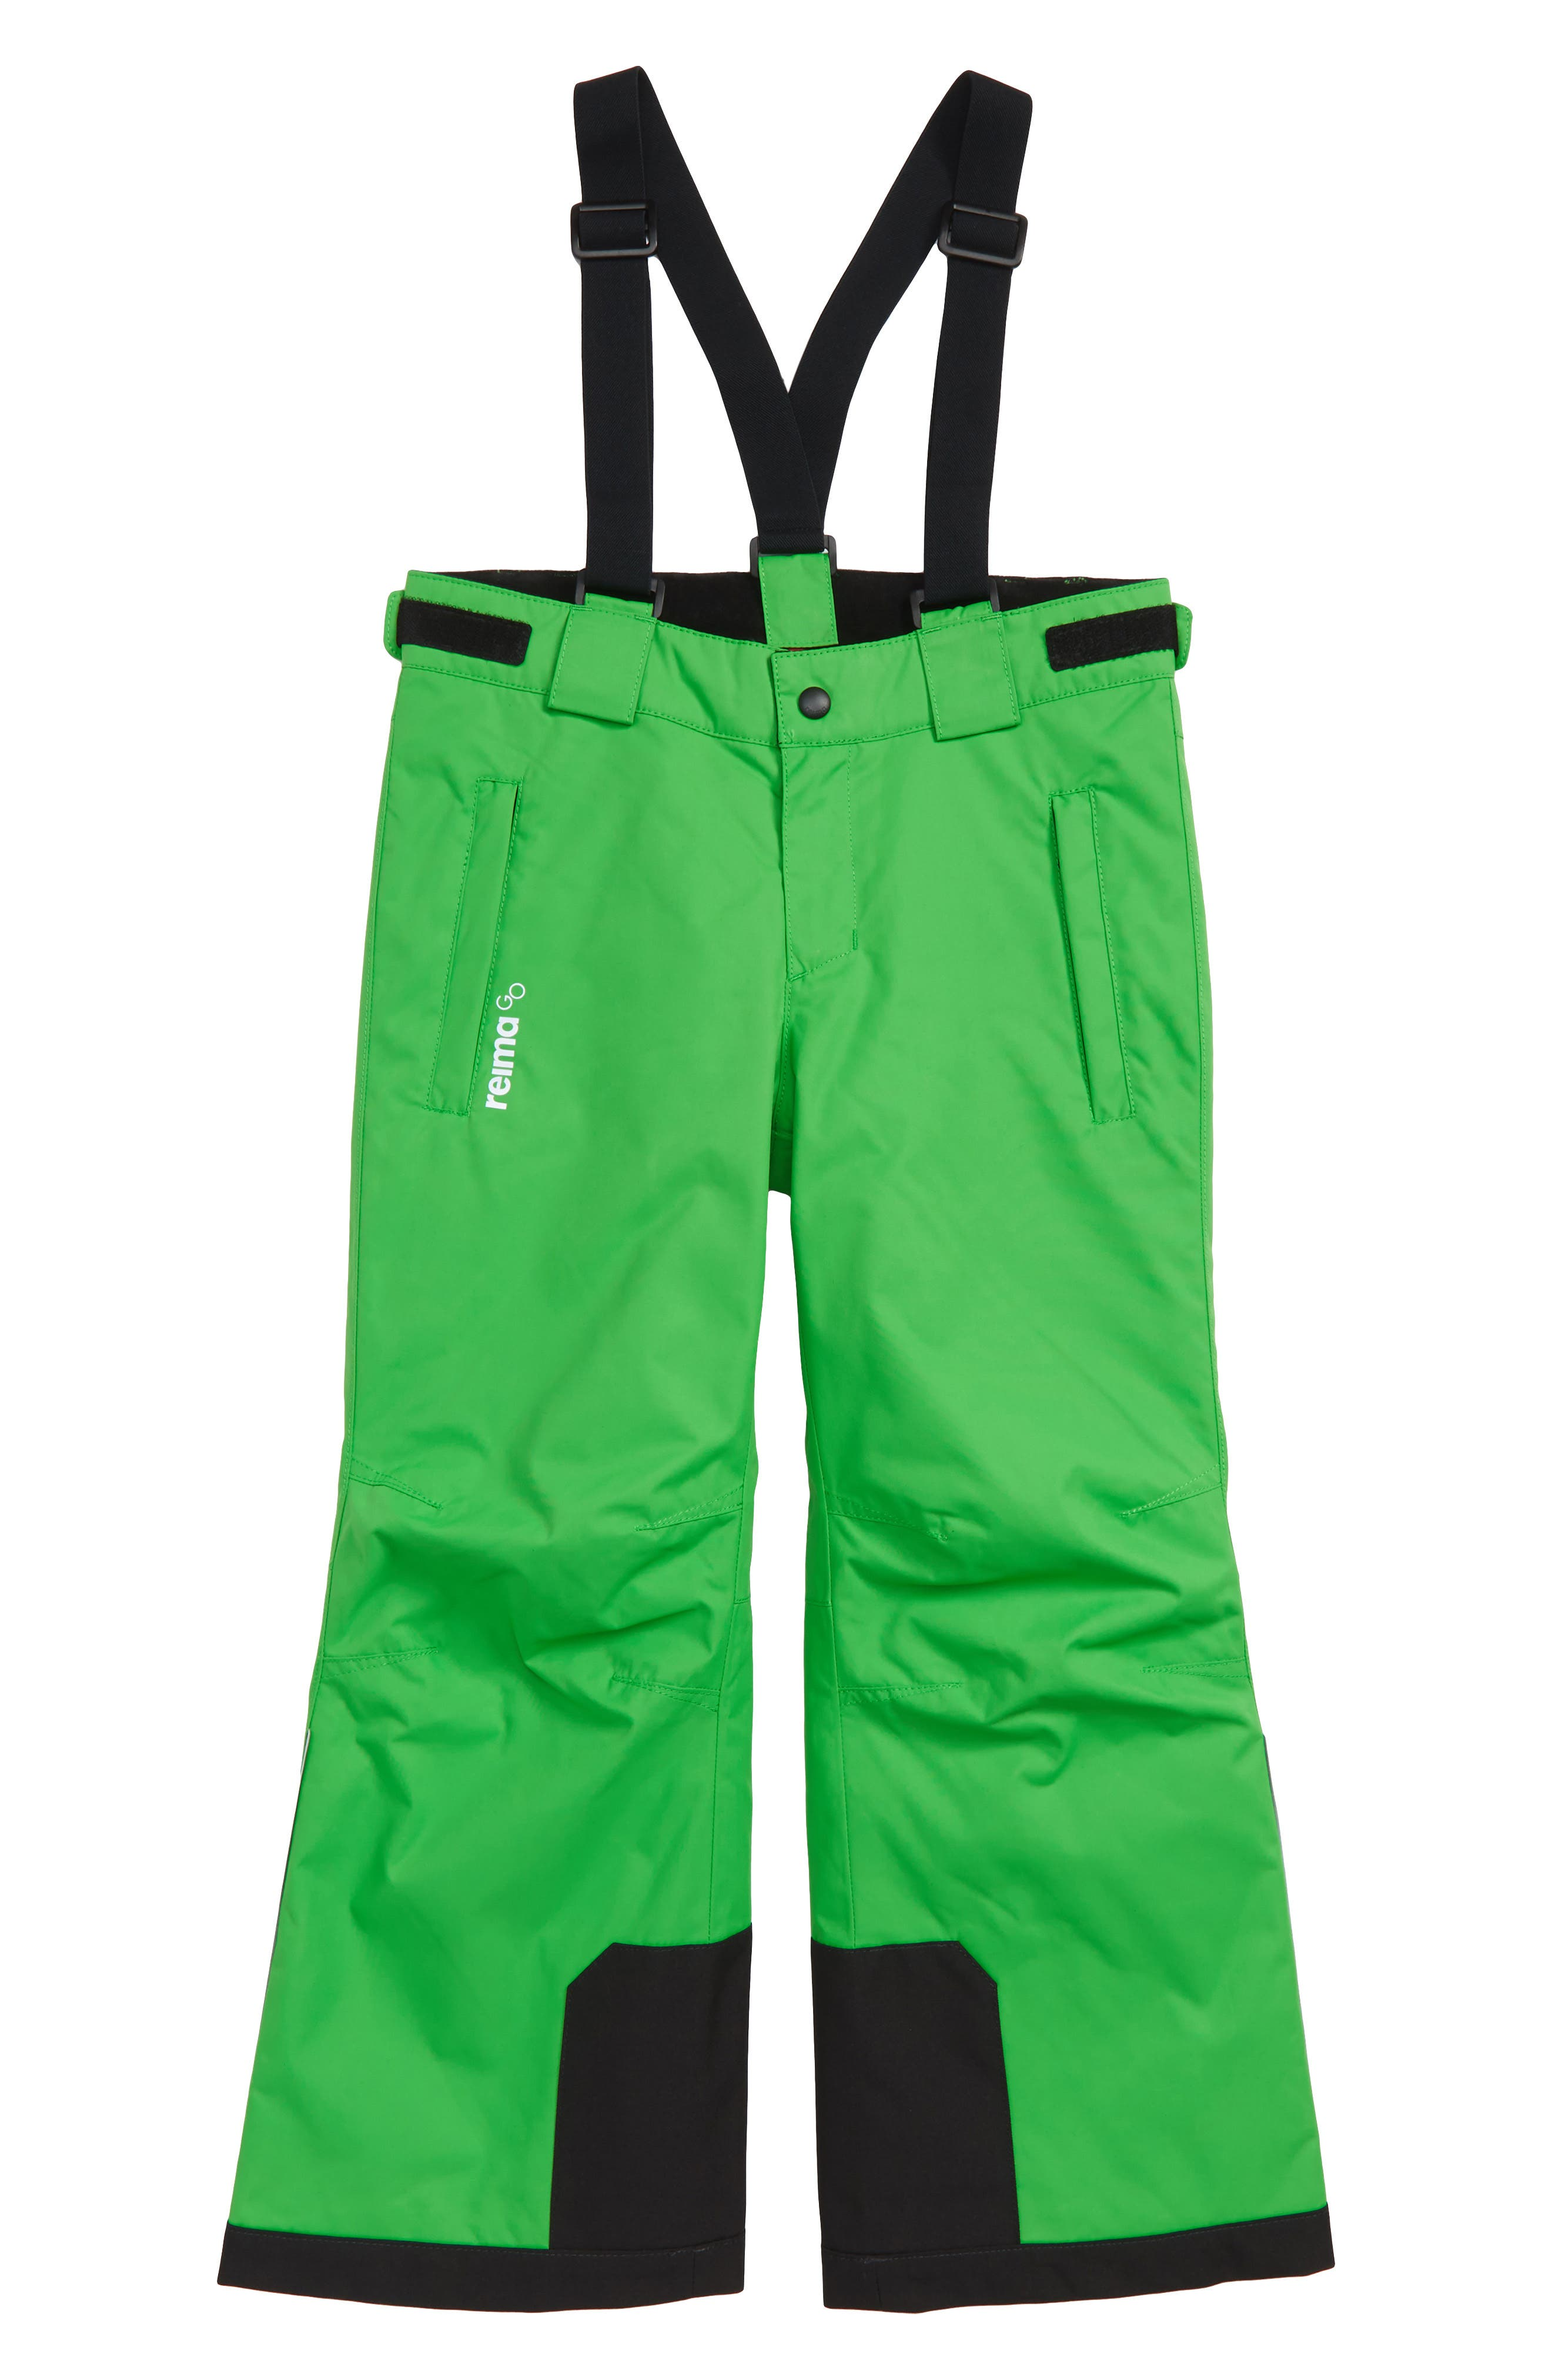 REIMA,                             Reimatec<sup>®</sup> Takeoff Waterproof Insulated Snow Pants,                             Main thumbnail 1, color,                             300